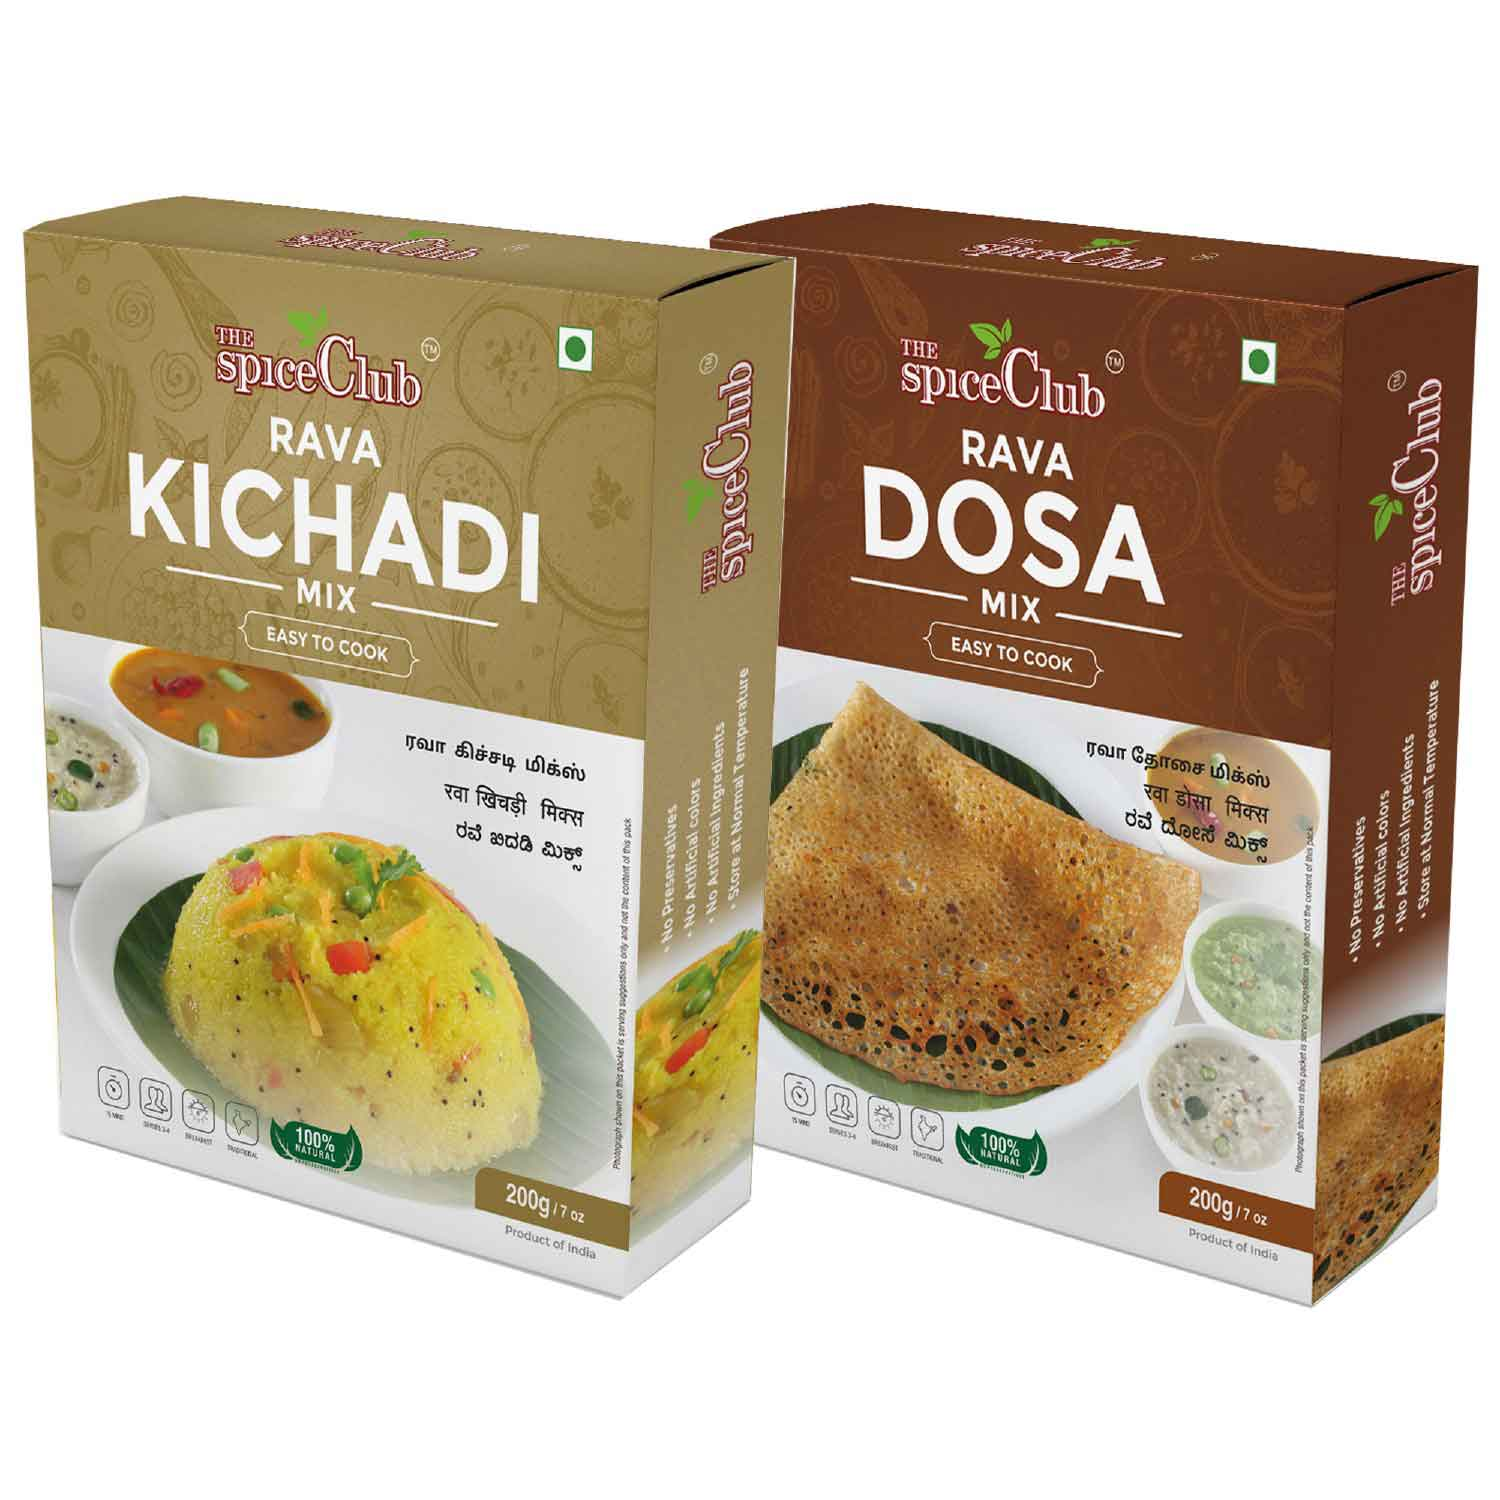 The Spice Club Rava Kichadi Mix 200g + Rava Dosa Mix 200g ( No Added Preservatives & Artificial Ingredients )